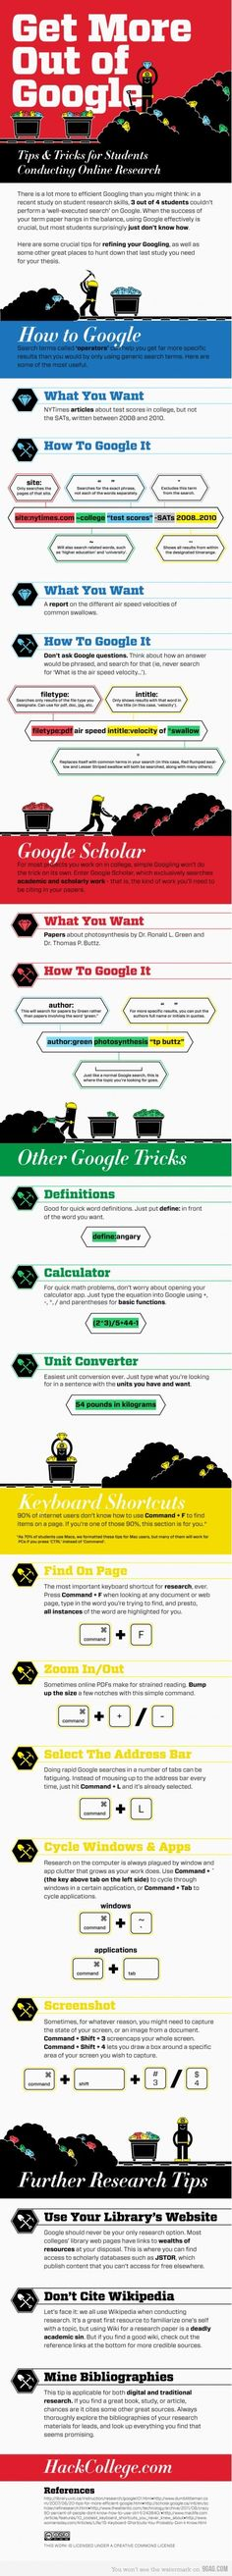 Get More Out Of Google  Infograph on Googling smarter for better results!